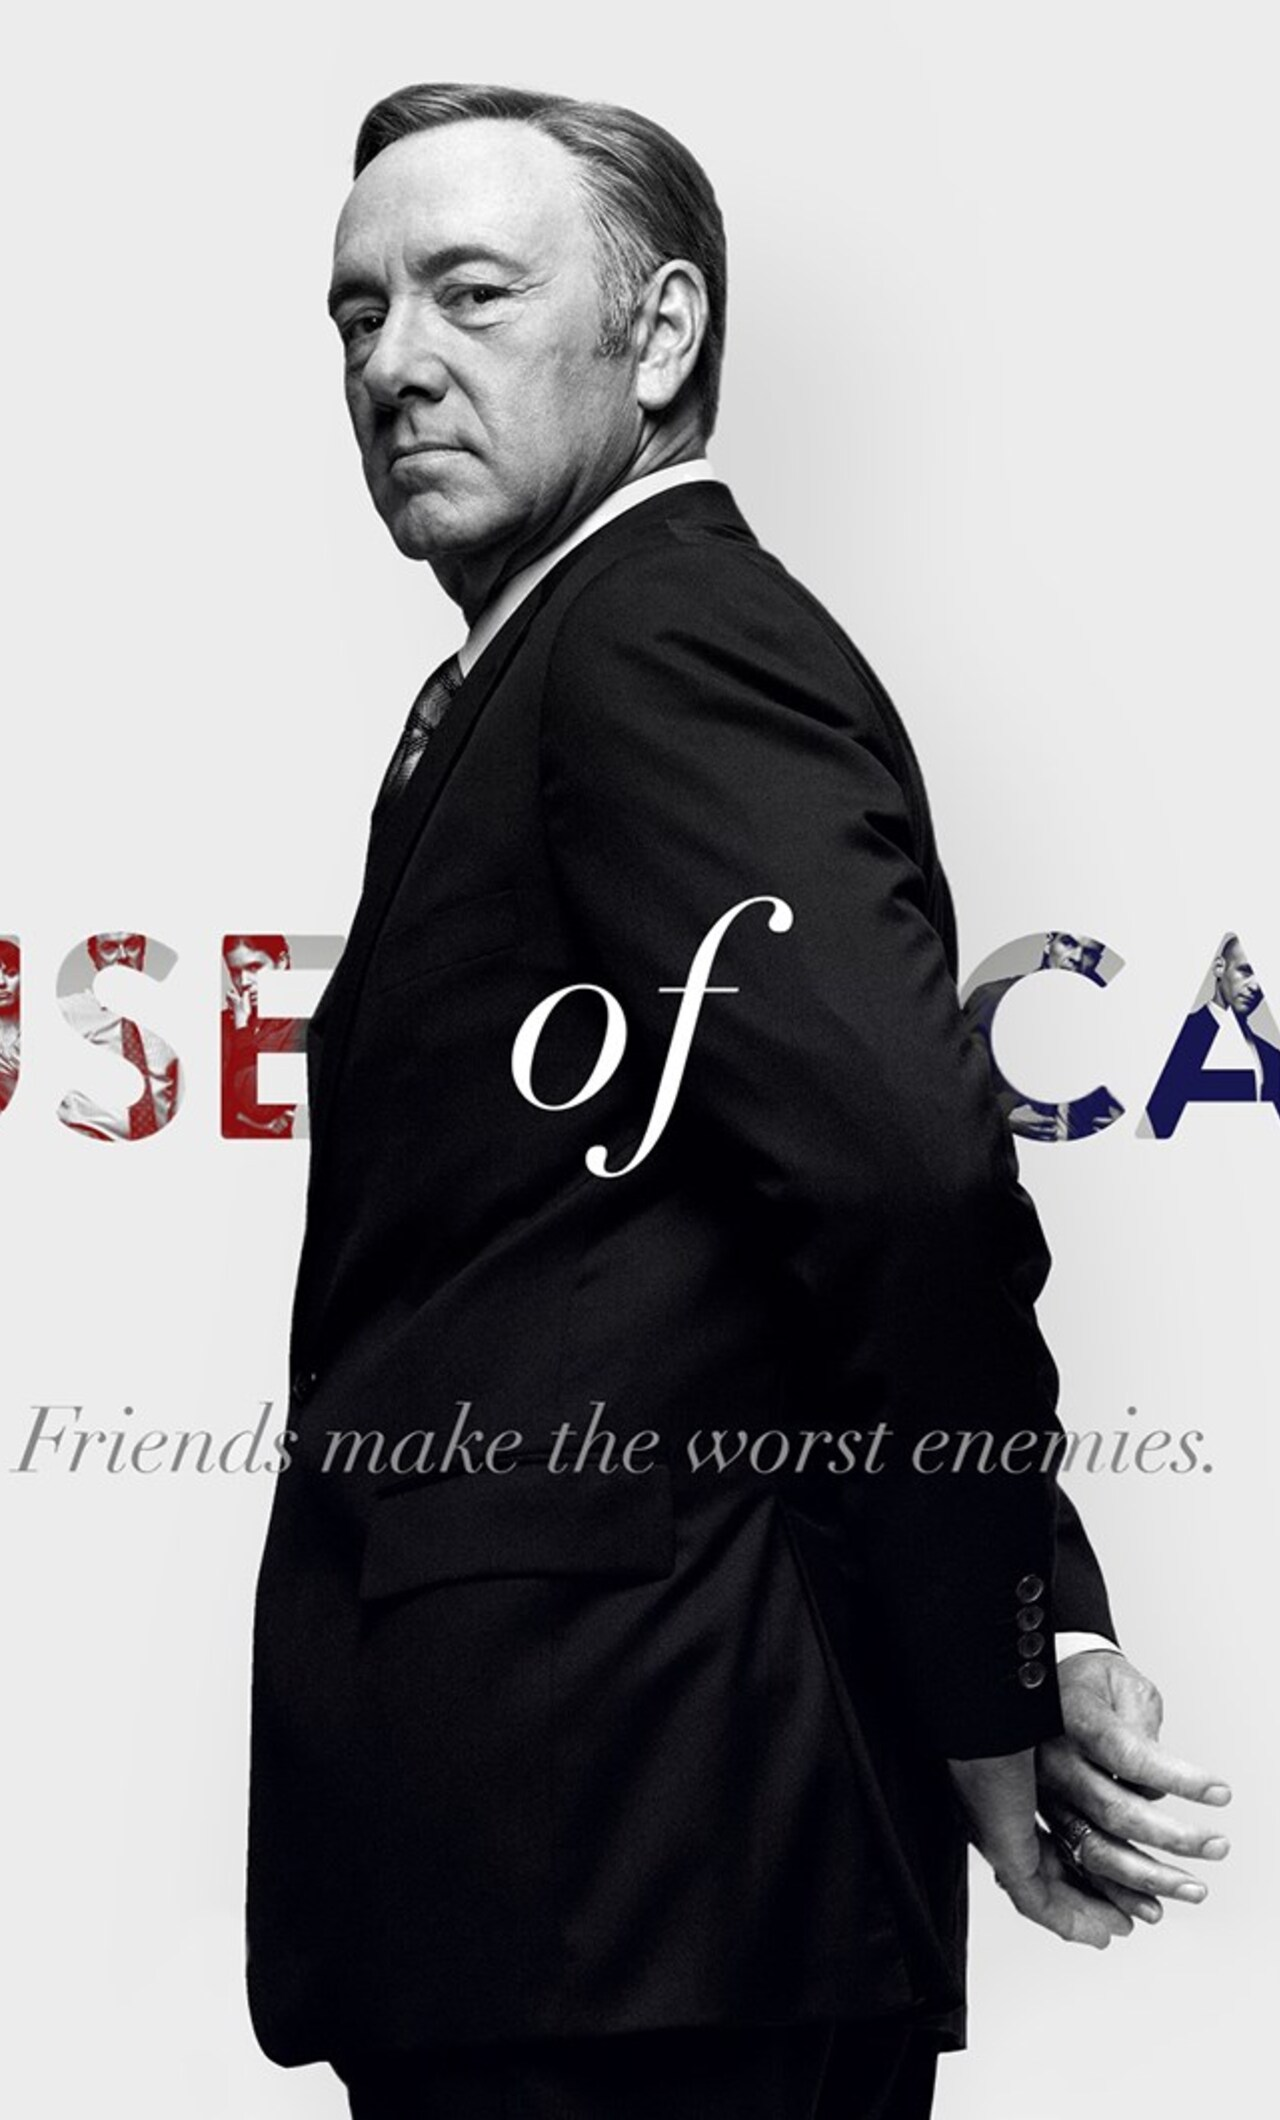 1280x2120 House Of Cards Quote Iphone 6 Hd 4k Wallpapers Images